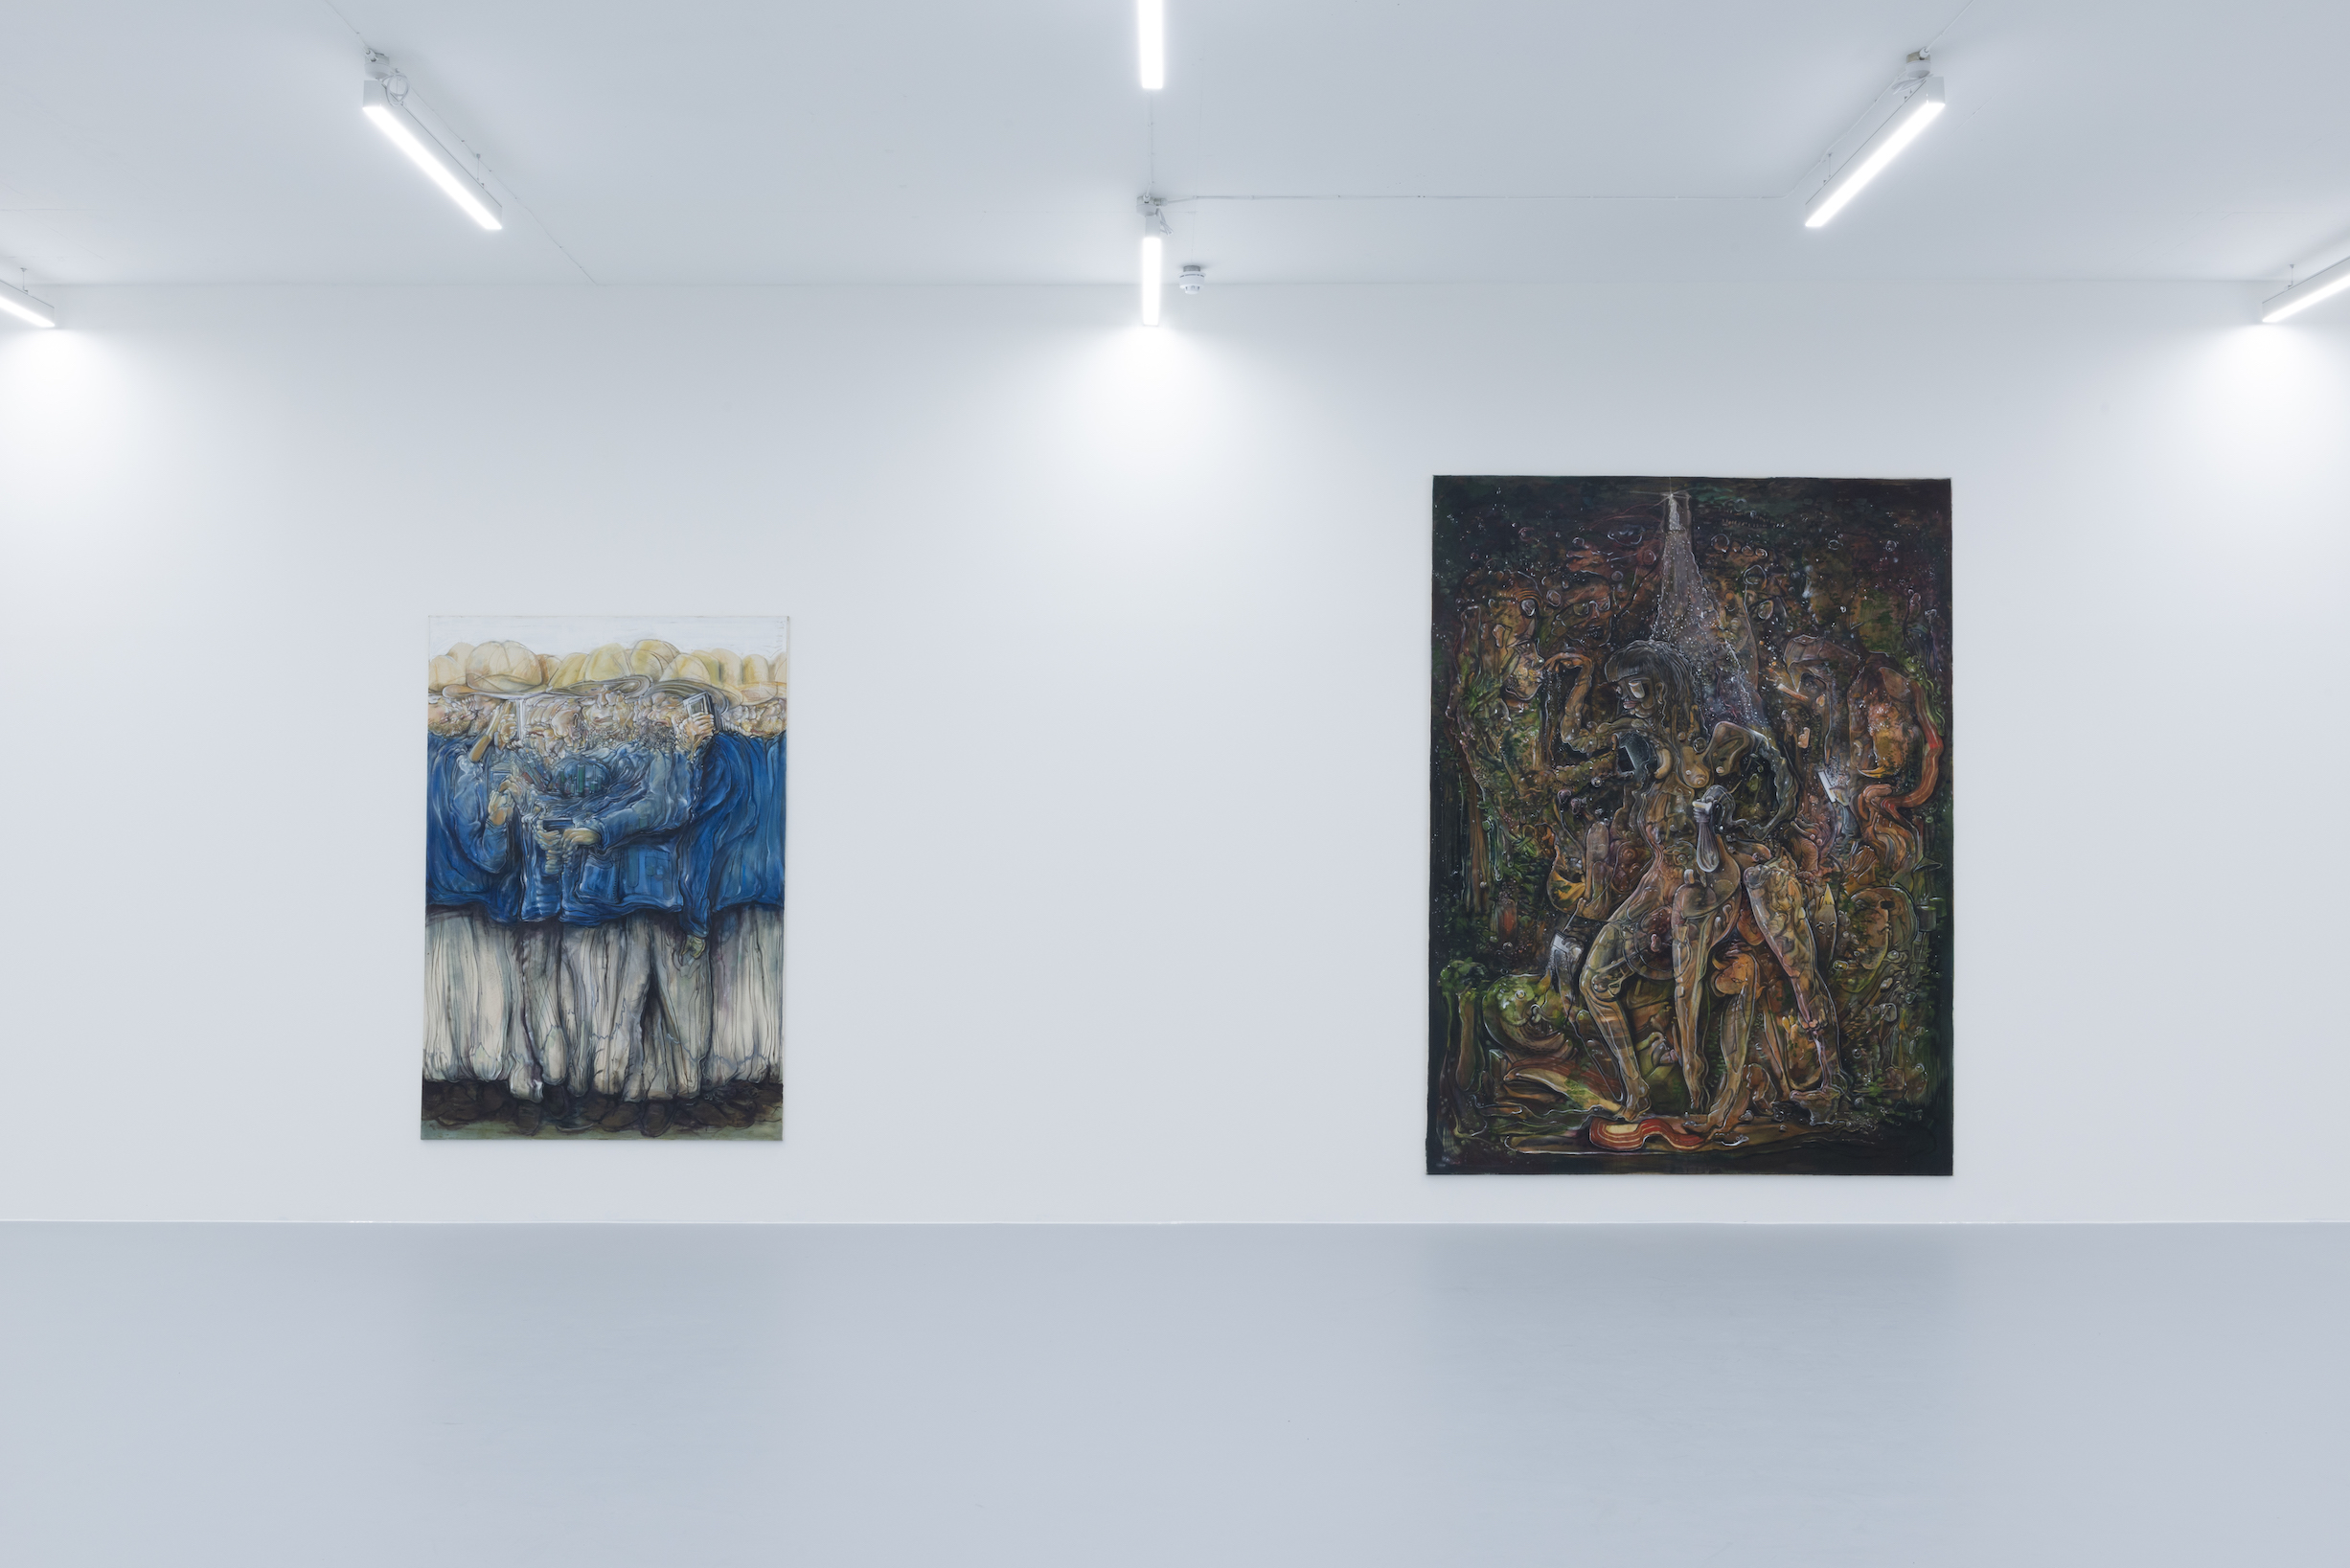 Installation view 2, Pascal Sender at Saatchi Yates, 2020, Courtesy of the artist and Saatchi Yates